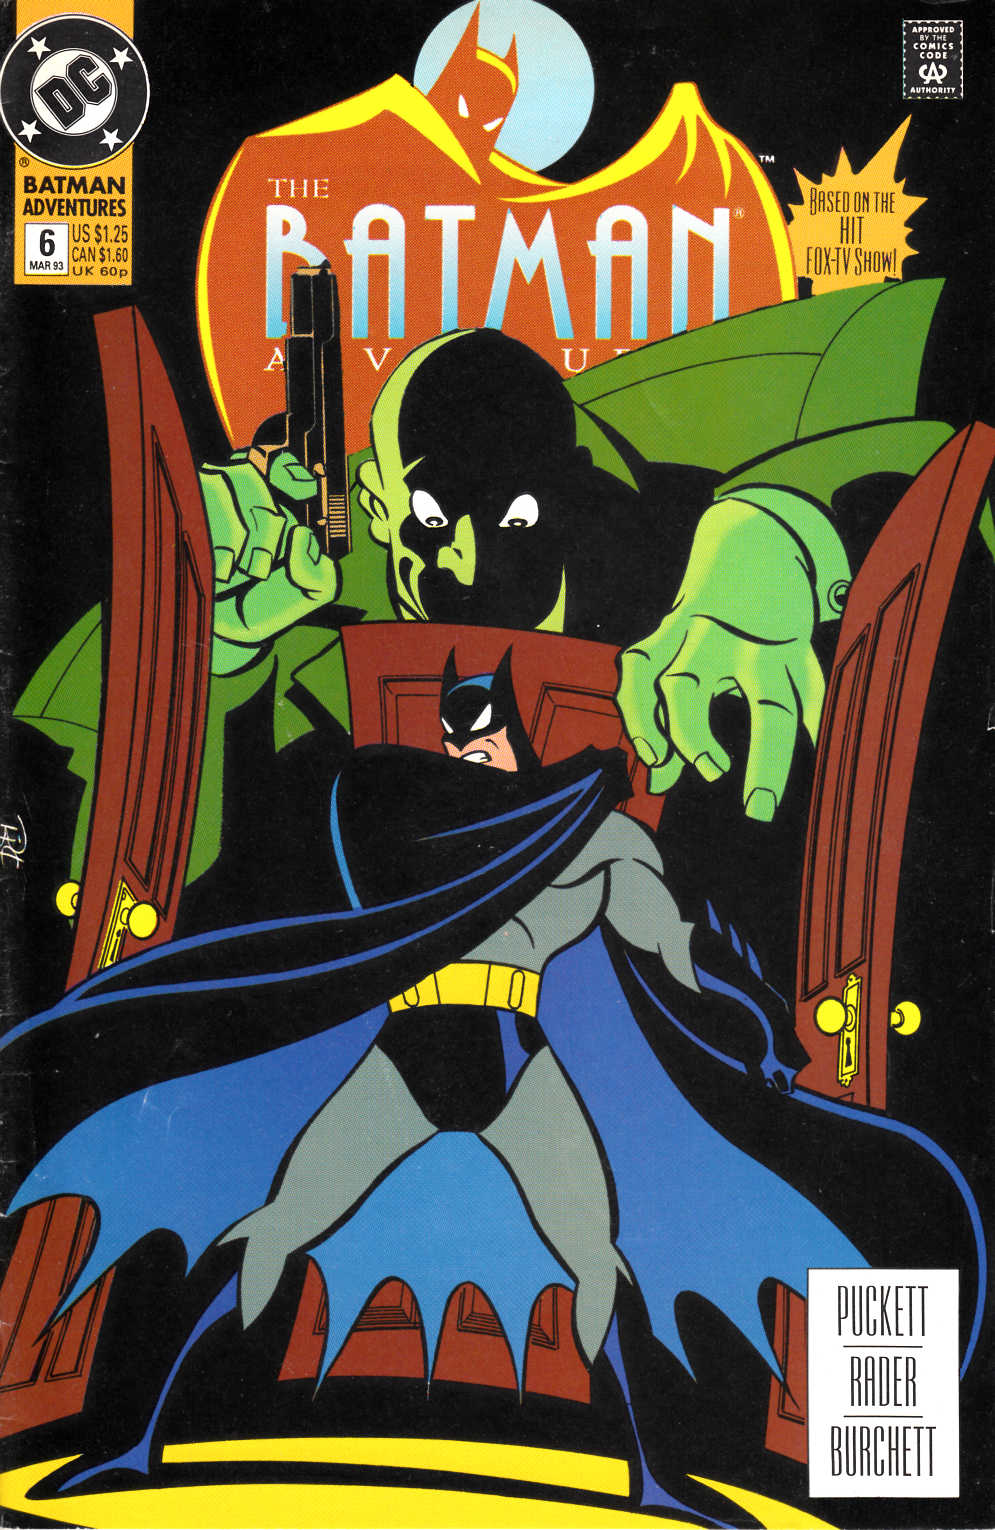 Batman Adventures #6 [DC Comic] LARGE